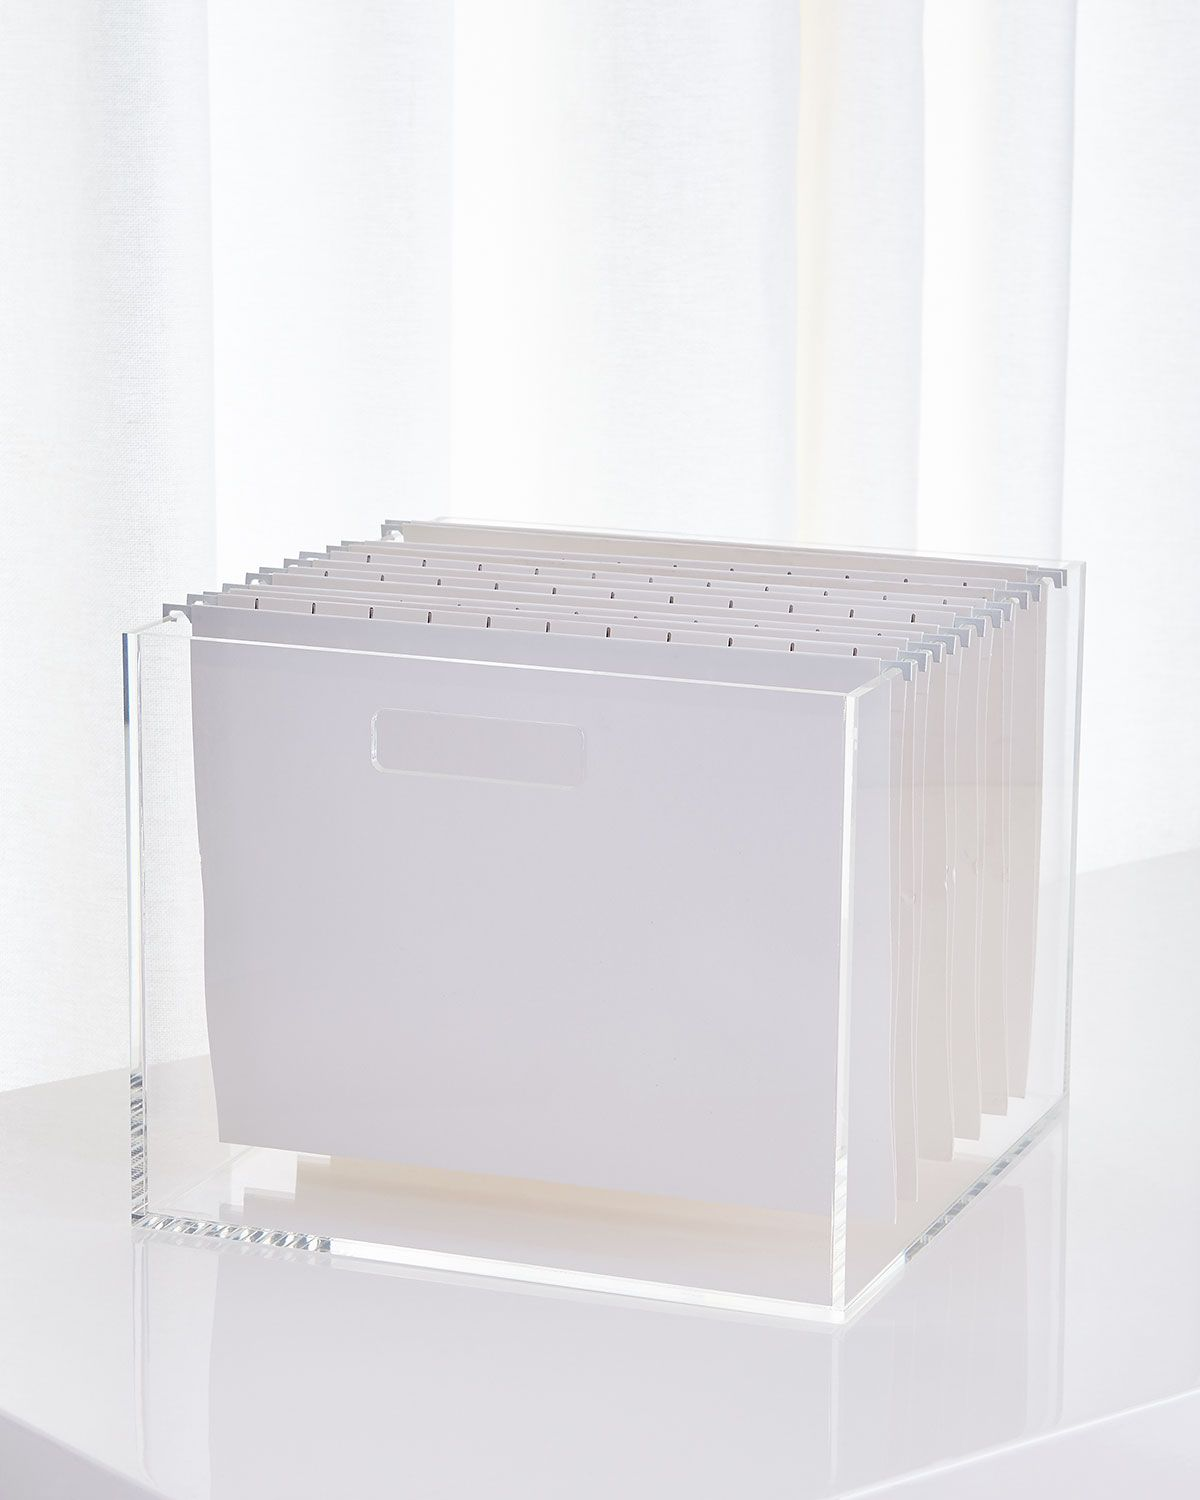 Acrylic Filing Storage Is Chic Enough To Have Out In Your Office!